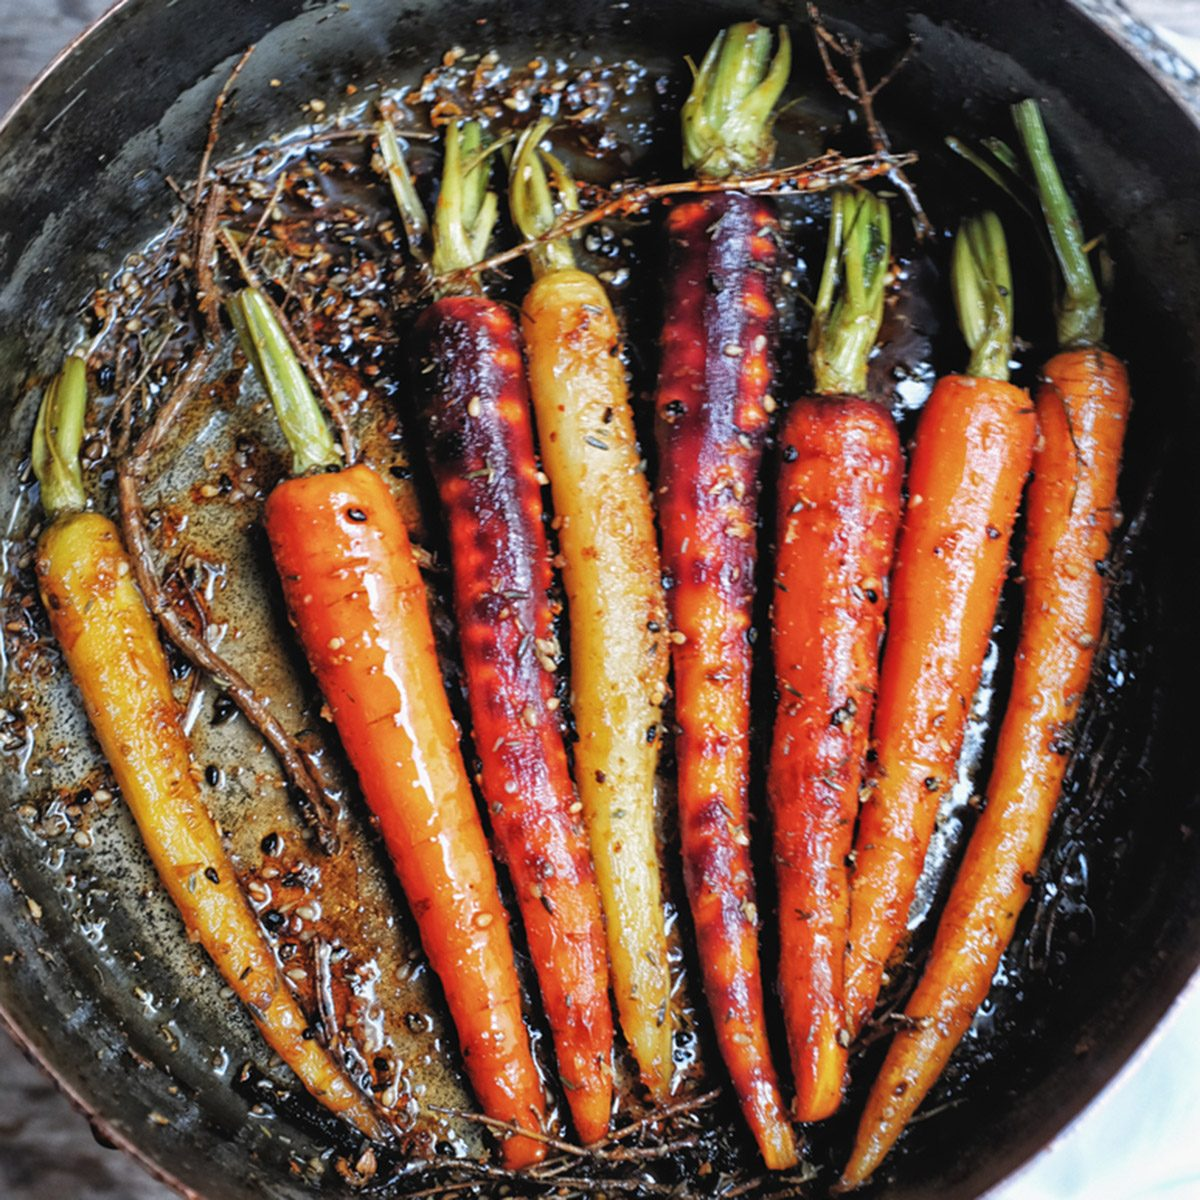 Grilled colorful rainbow carrot in sesame Teriyaki and Mirin sauce, mix herbs, thyme, and Japanese spices in traditional copper pot.